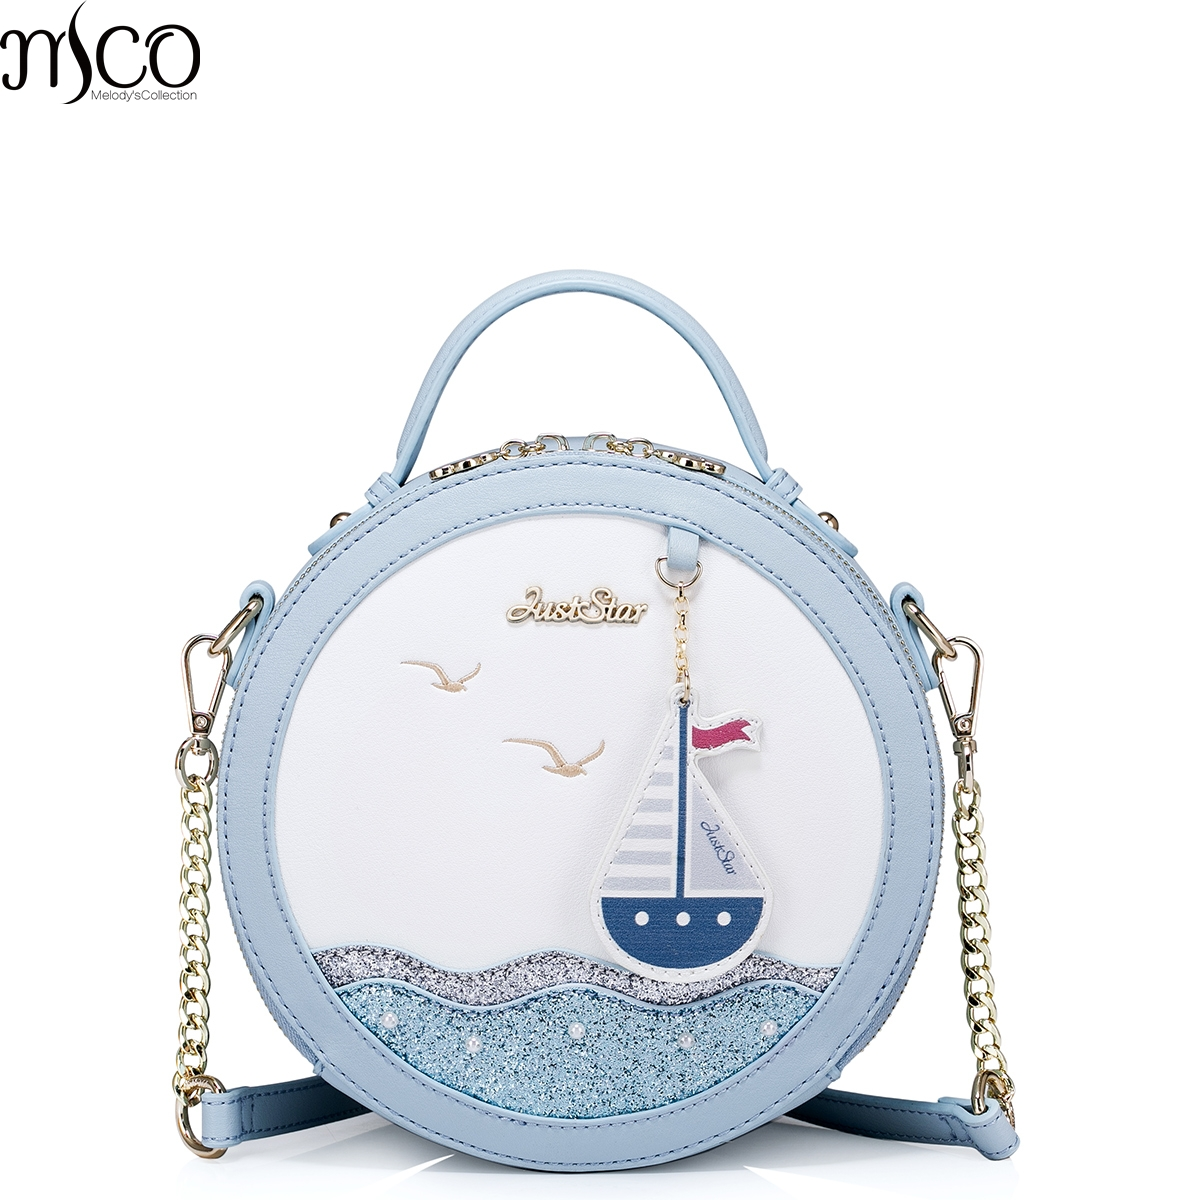 2017 Luxury Sequin Beach Handbag For Teenager Girls Famous Brands Tote Embroidered Leather Crossbody Bag Women Shoulder Bags sgarr fashion pu leather casual tote bag famous brands small women embroidery handbag shoulder bags luxury female crossbody bag